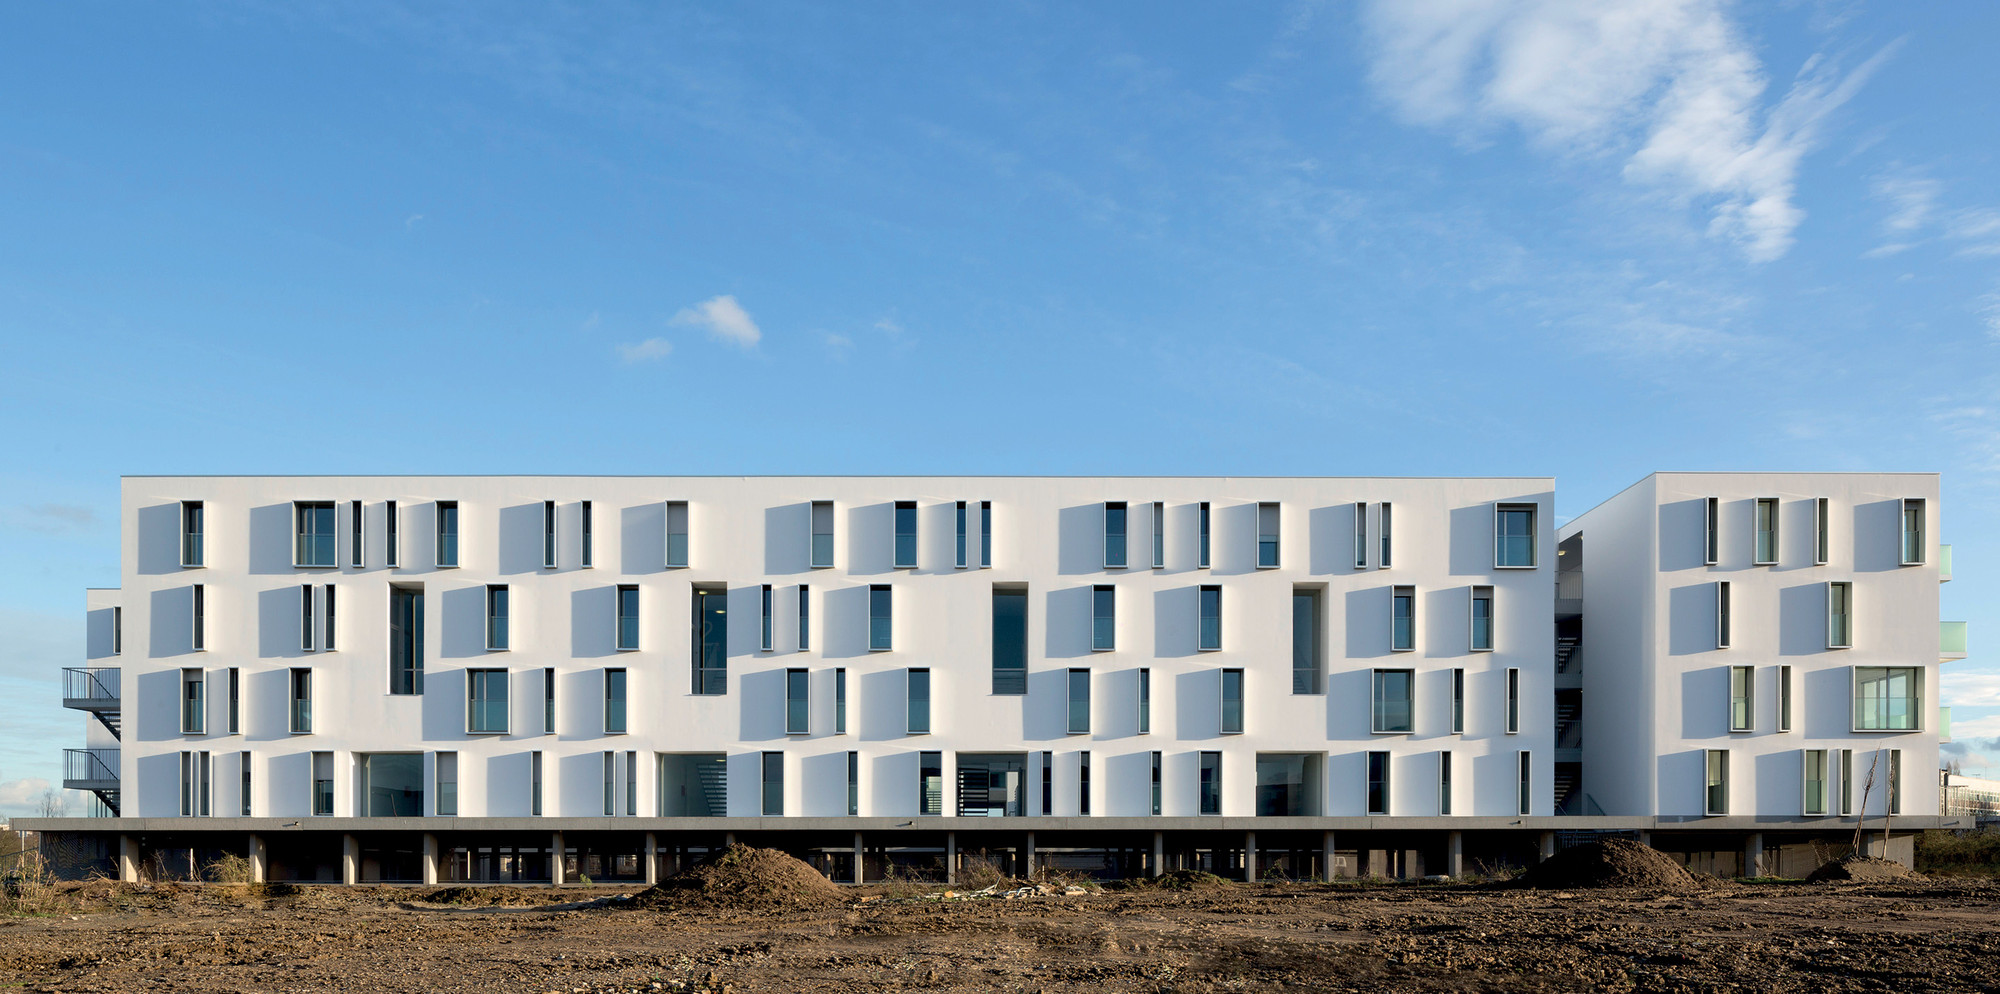 Canopia park housing babinrenaud archdaily solutioingenieria Image collections